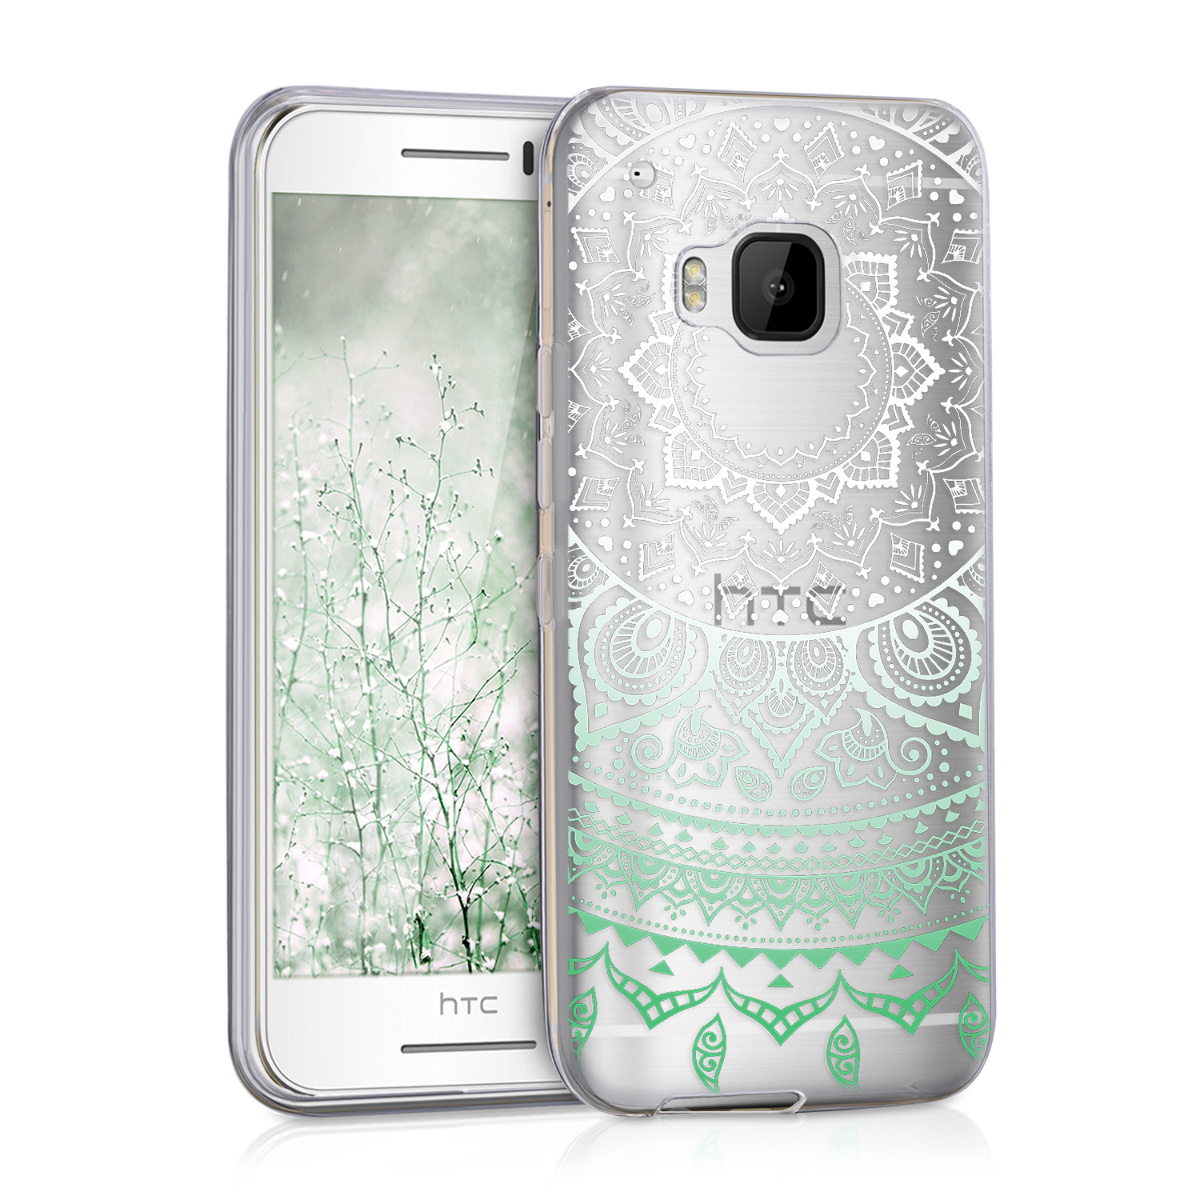 3862469934d kwmobile TPU Silicone Case for HTC One S9 - Crystal Clear Smartphone Back  Case Protective Cover - Mint / White / Transparent. ‹ › ‹ › ‹ › ‹ ›